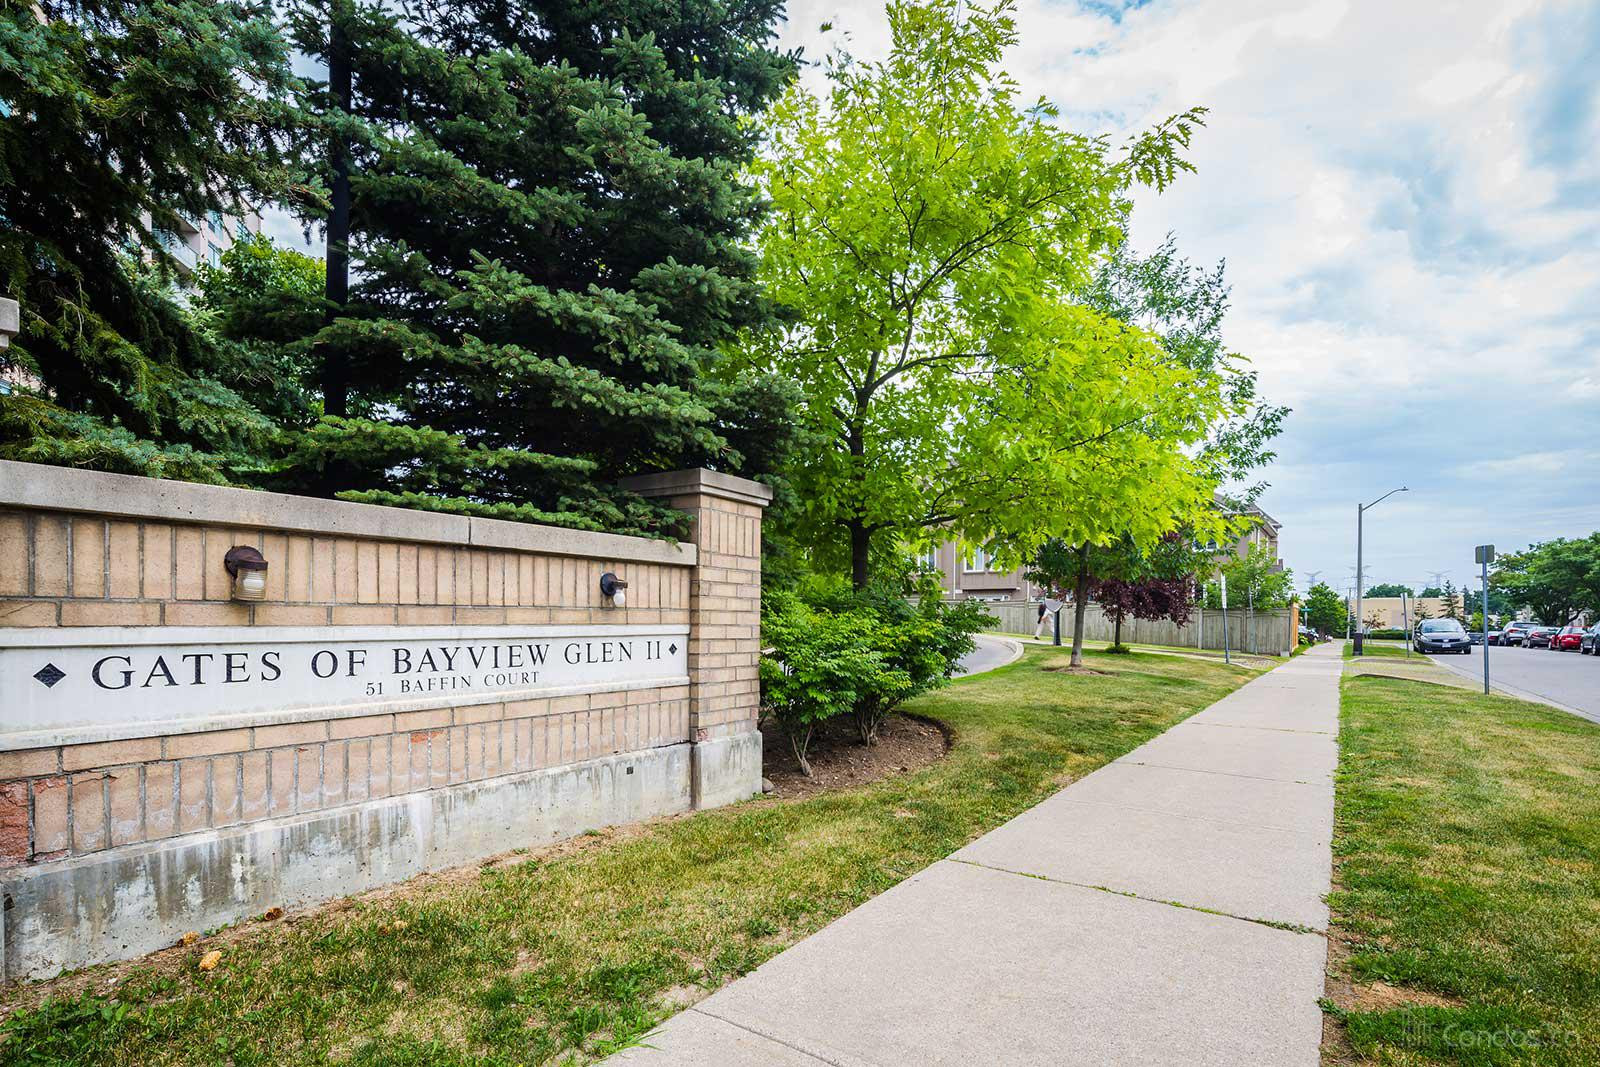 The Gates of Bayview Glen Ⅱ at 51 Baffin Crt, Richmond Hill 0